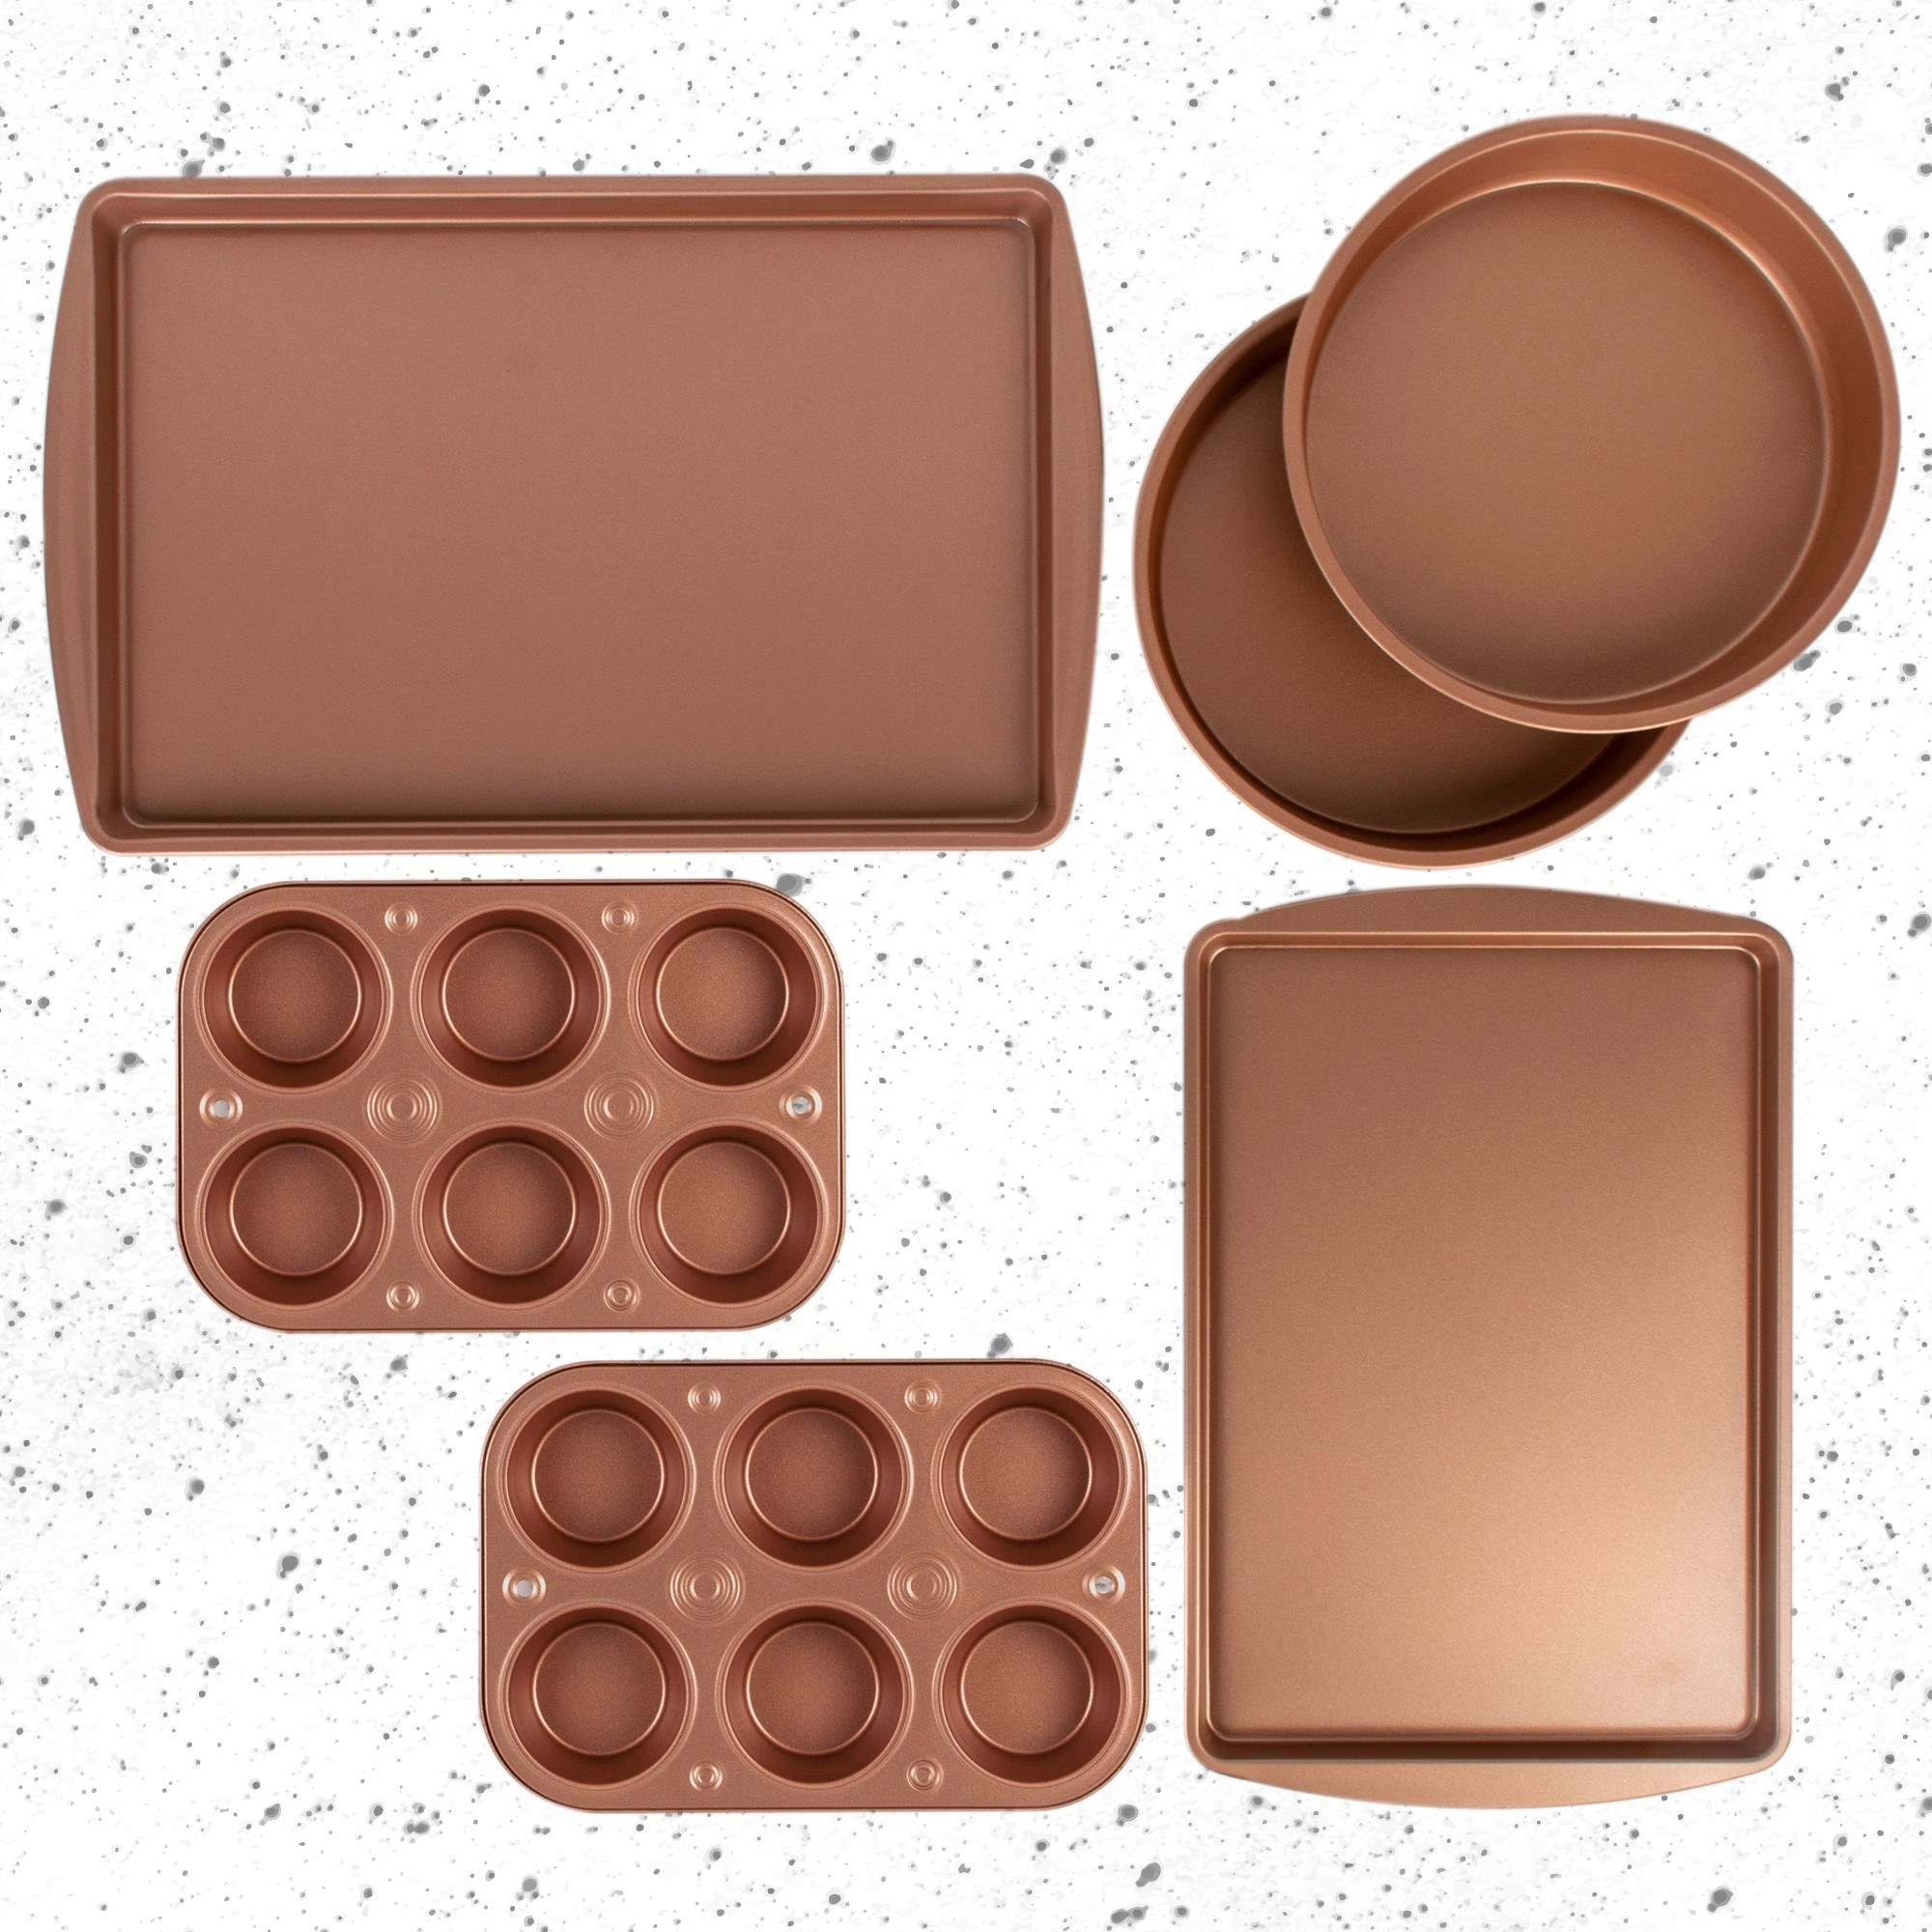 copper bakeware including two sheet pans, two round pans, and two muffin tins